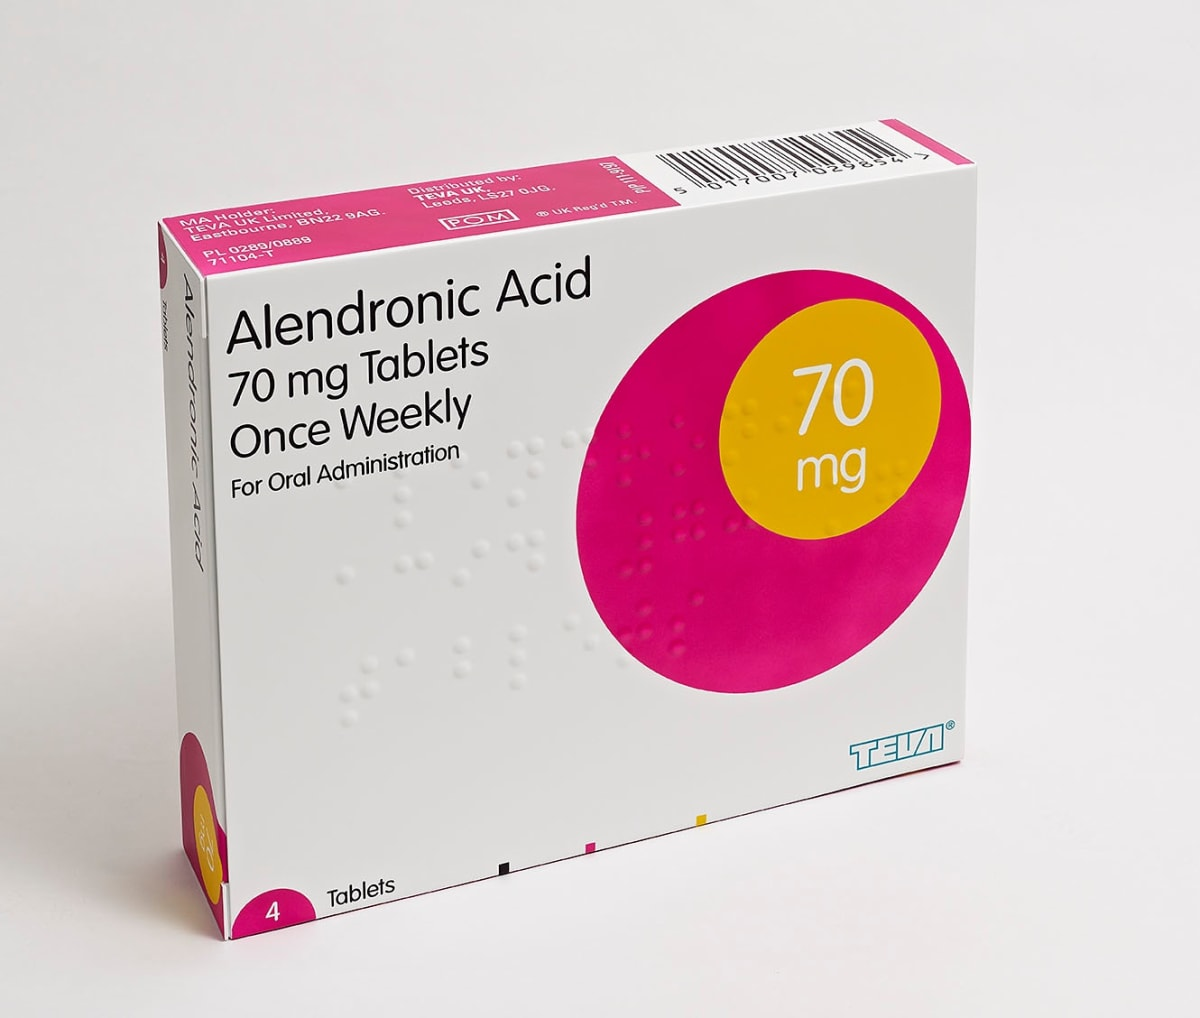 Damien Hirst Alendronic Acid 70mg Tablets Glass reinforced plastic and Polyurethane resin structure. 2014. Numbered, signed and dated. Published by Paul Stolper and Other Criteria. OC10064 / DHS18305 H 56 x W 71 x D 15cm Edition of 30